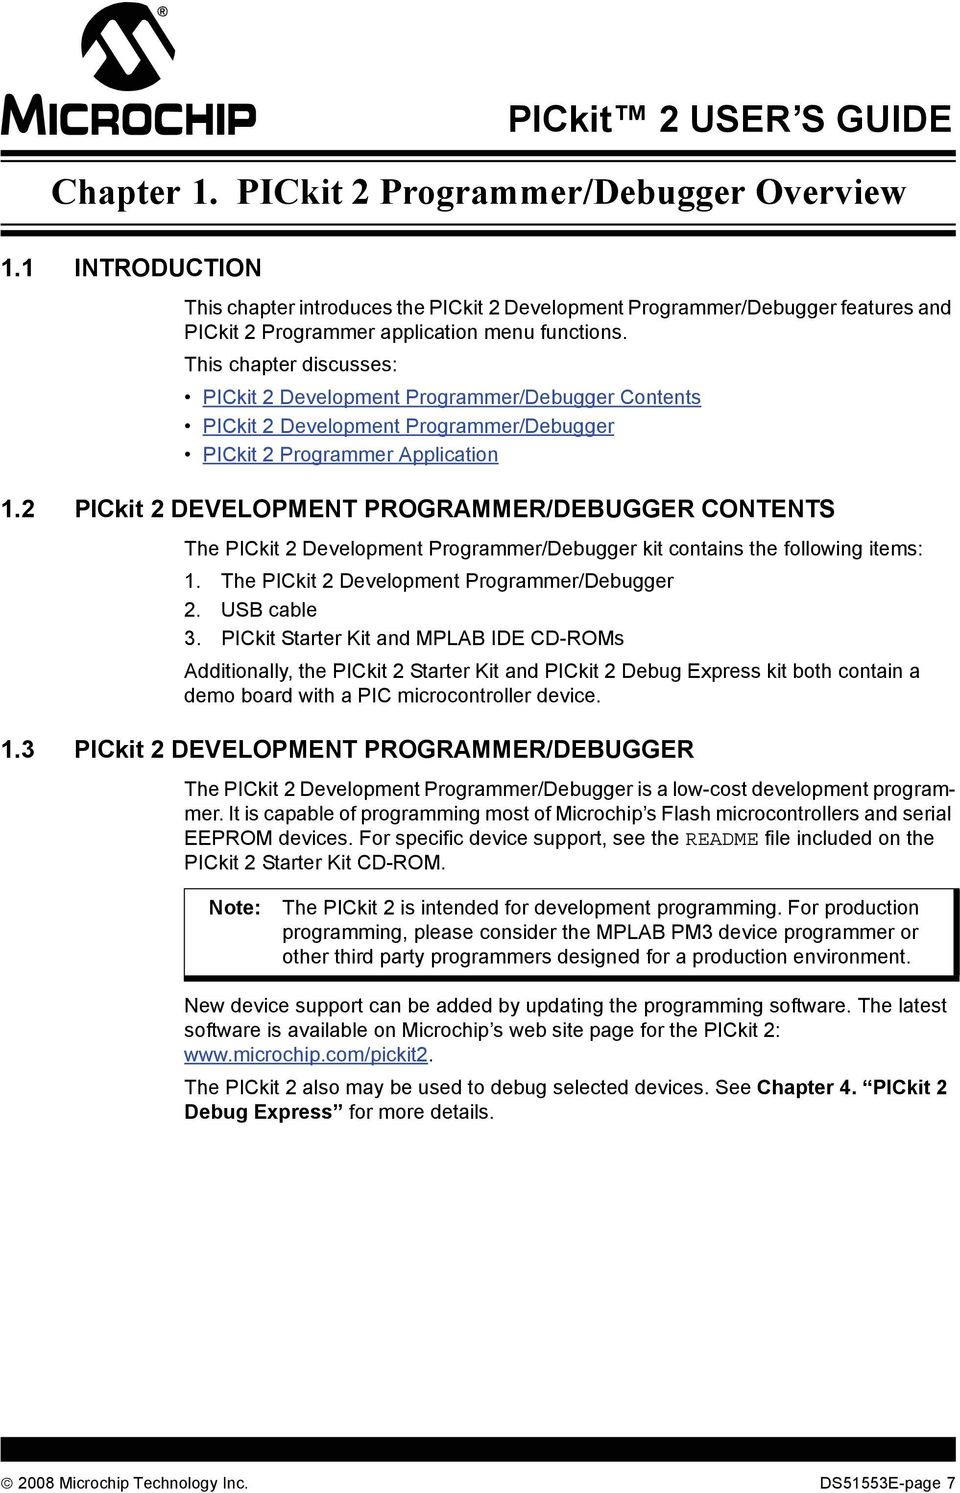 Pickit 2 Programmer Debugger User S Guide Pdf Original Microcontroller This Chapter Discusses Development Contents